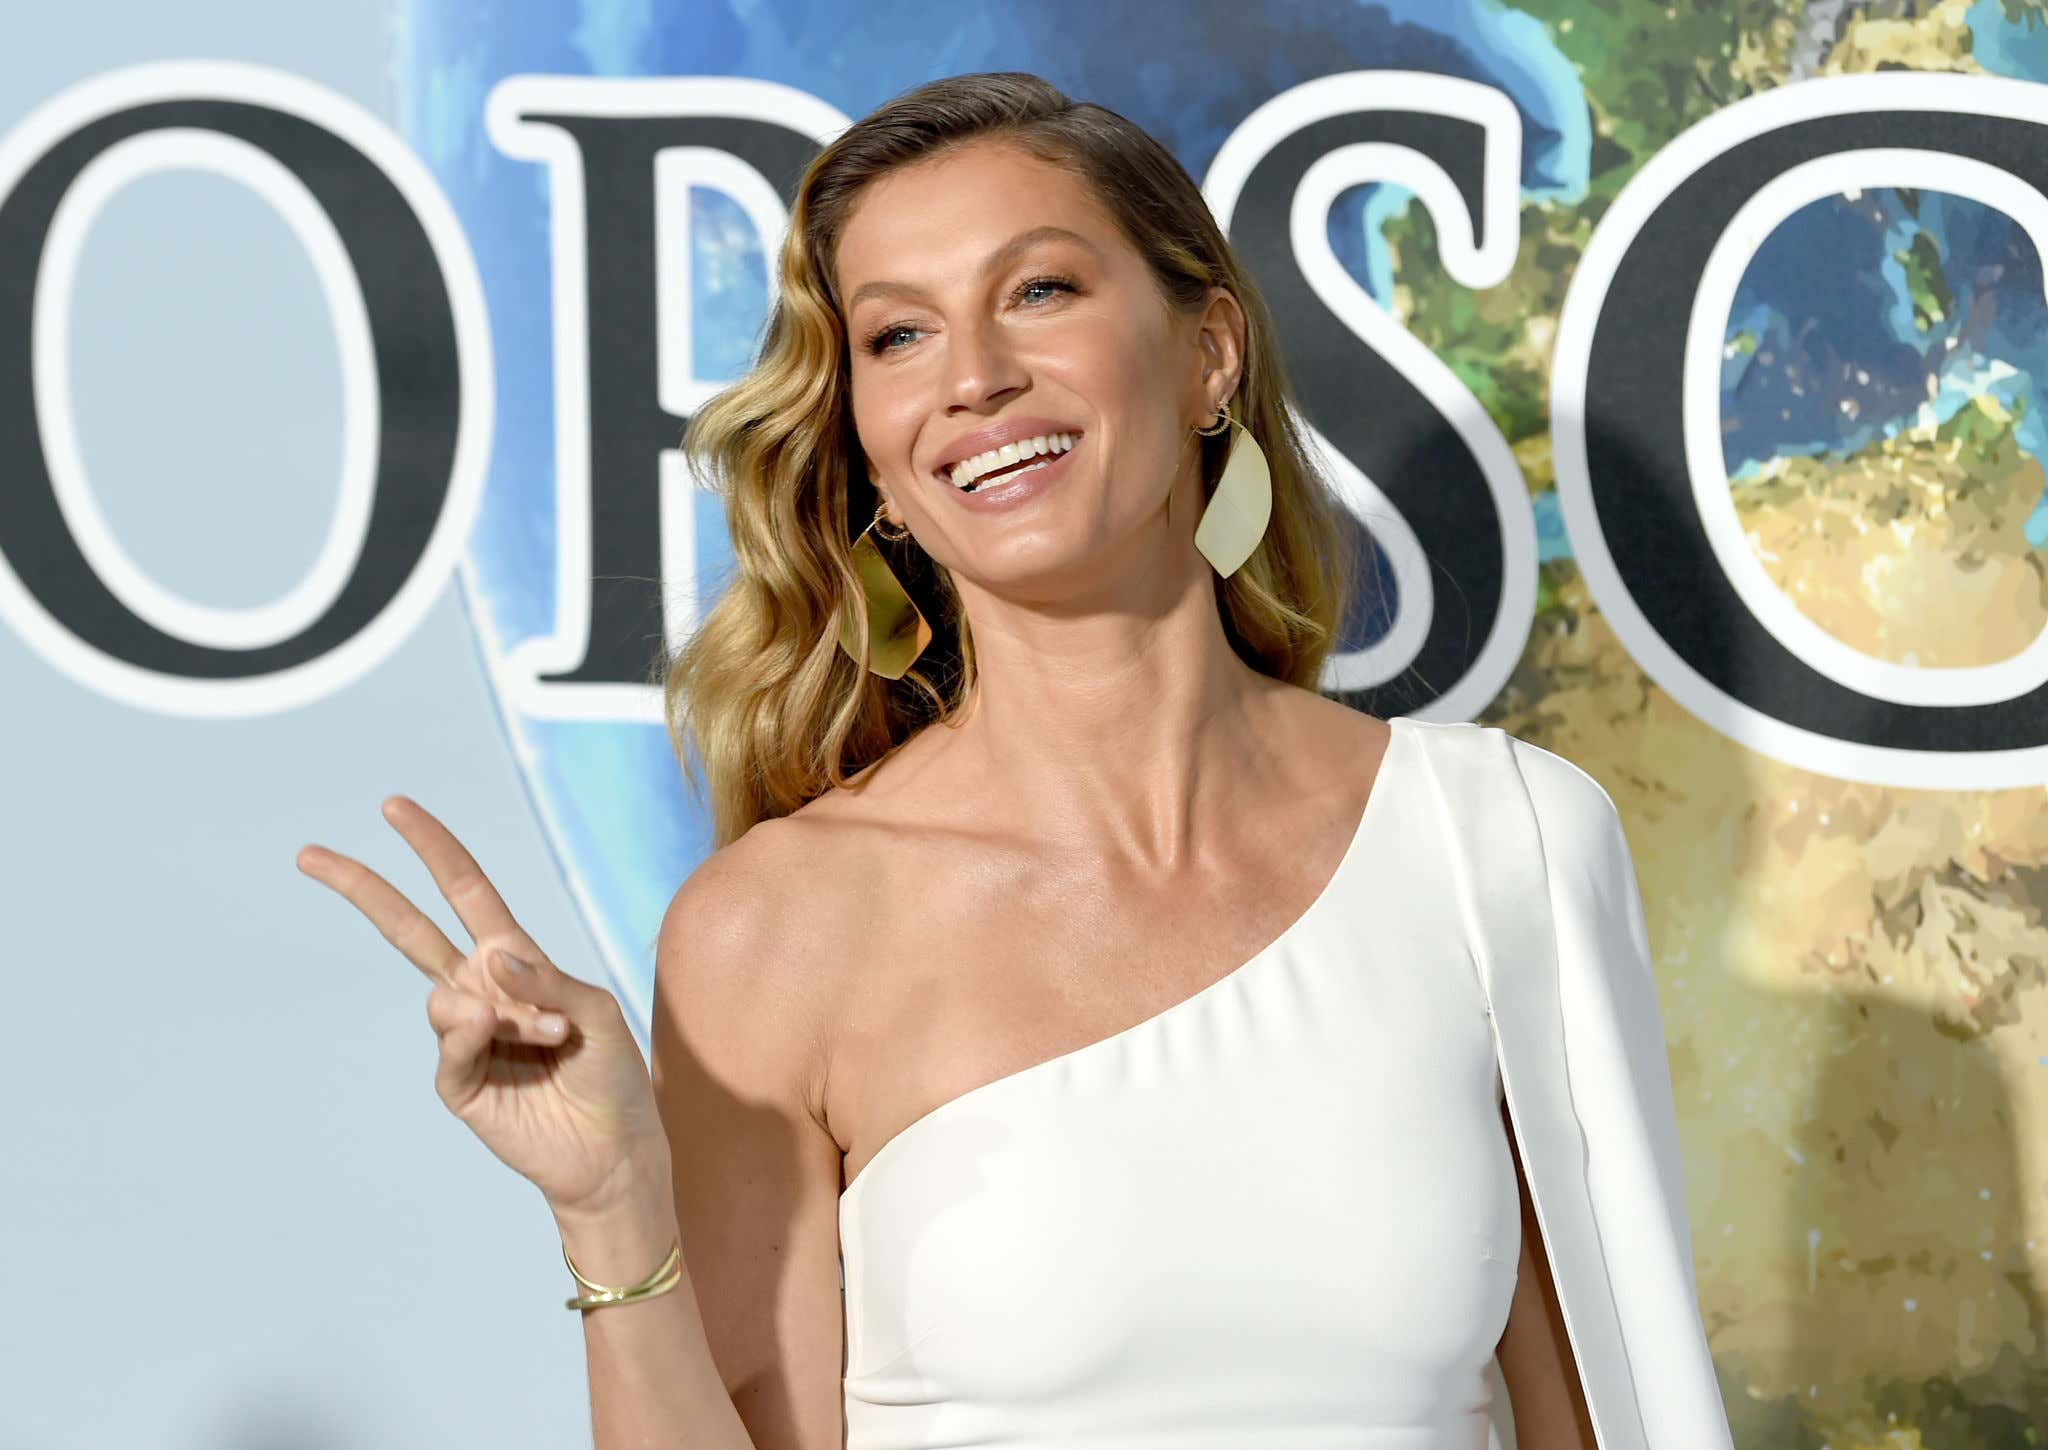 LOS ANGELES, CALIFORNIA - FEBRUARY 21: Gisele Bündchen attends the 2019 Hollywood For Science Gala at Private Residence on February 21, 2019 in Los Angeles, California. (Photo by Kevin Winter/Getty Images)